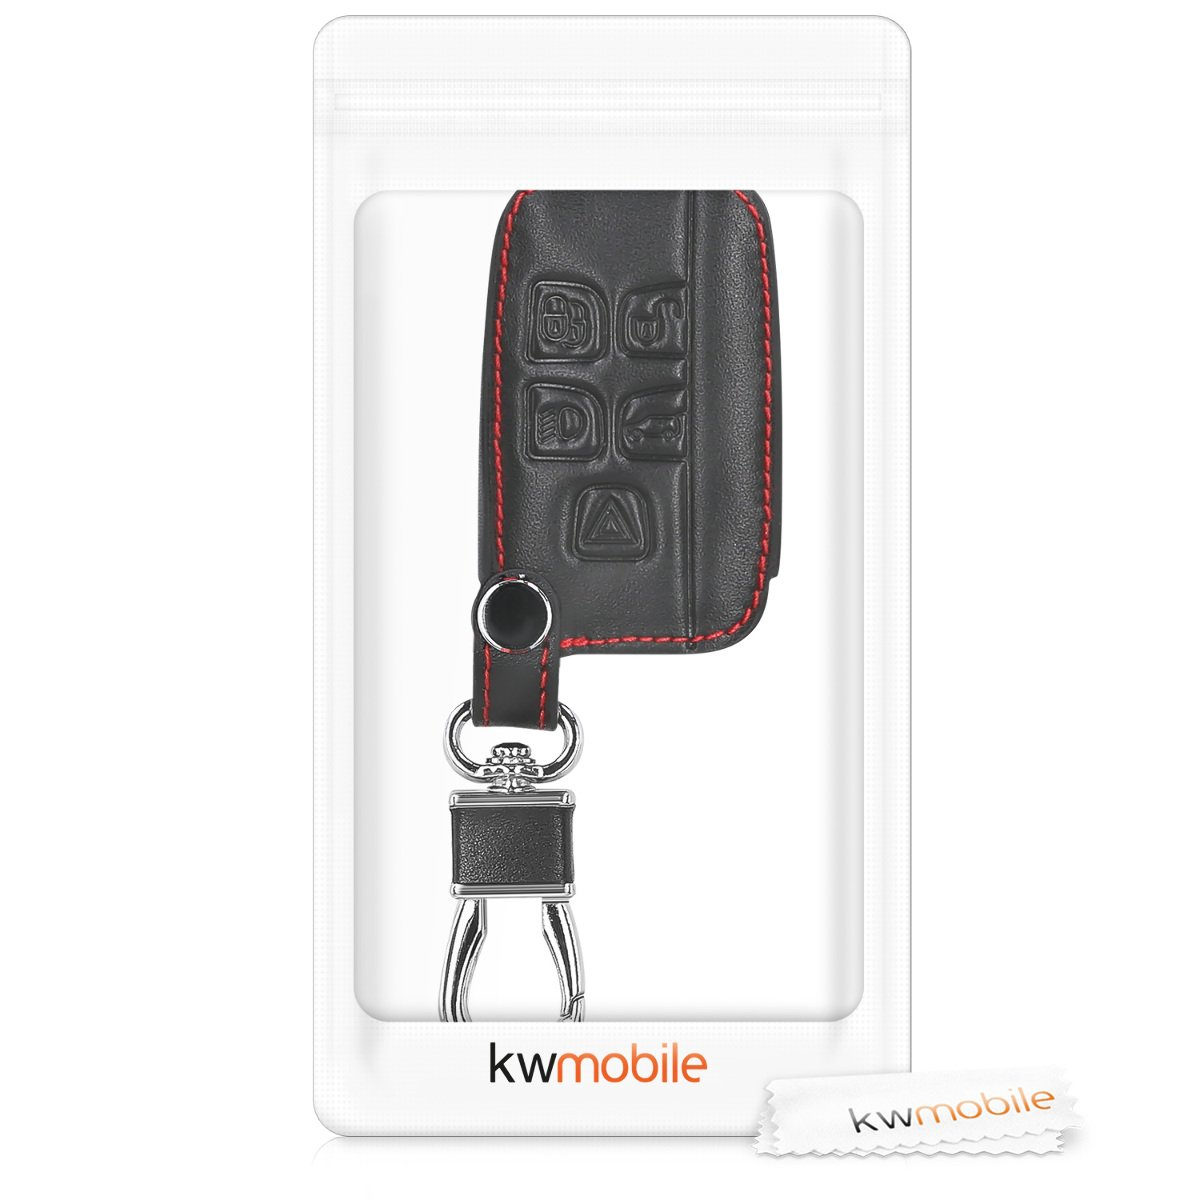 Heavy Duty PU Leather Protective Key Fob Cover for Land Rover Jaguar 5-Button Remote Car Key kwmobile Car Key Cover for Land Rover Jaguar Black